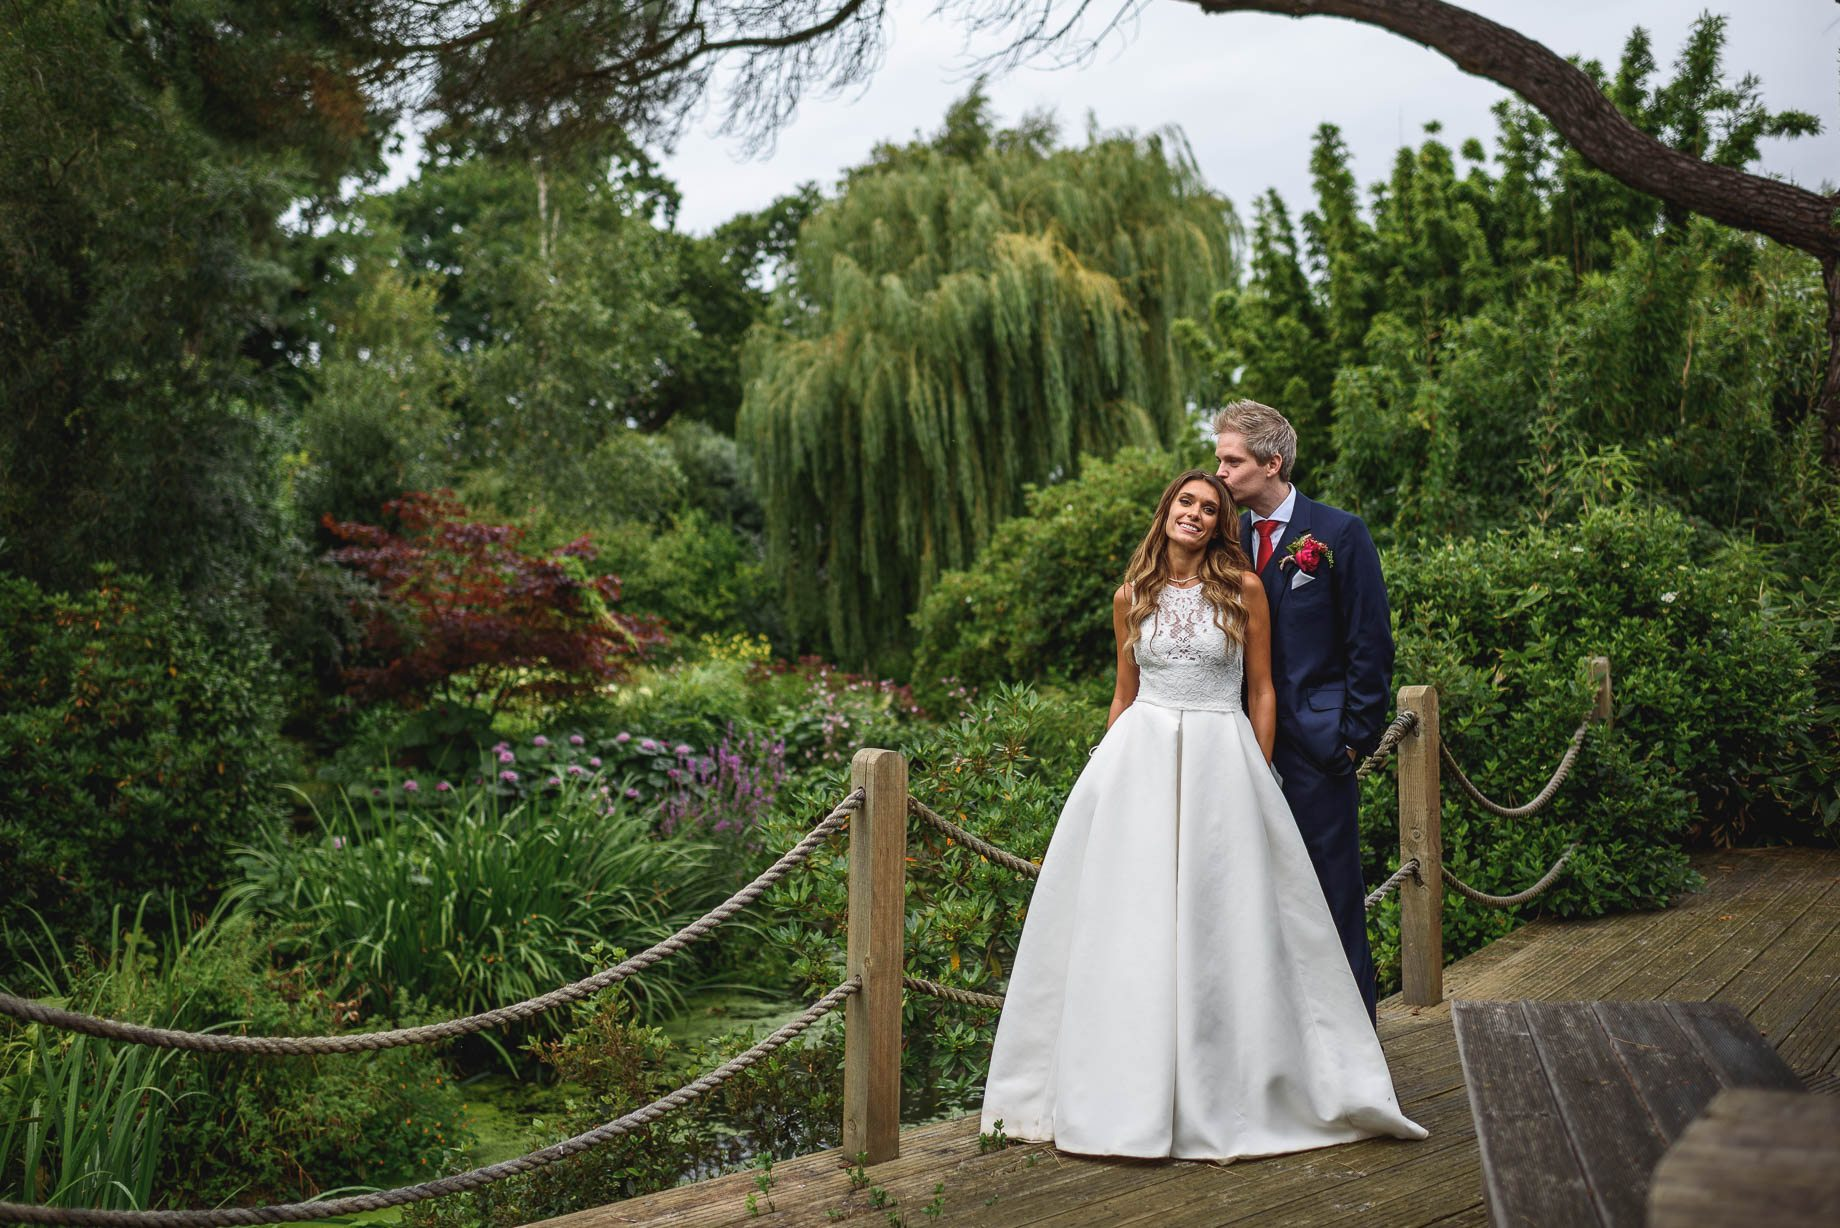 surrey-wedding-photography-guy-collier-photography-claire-and-tom-156-of-227